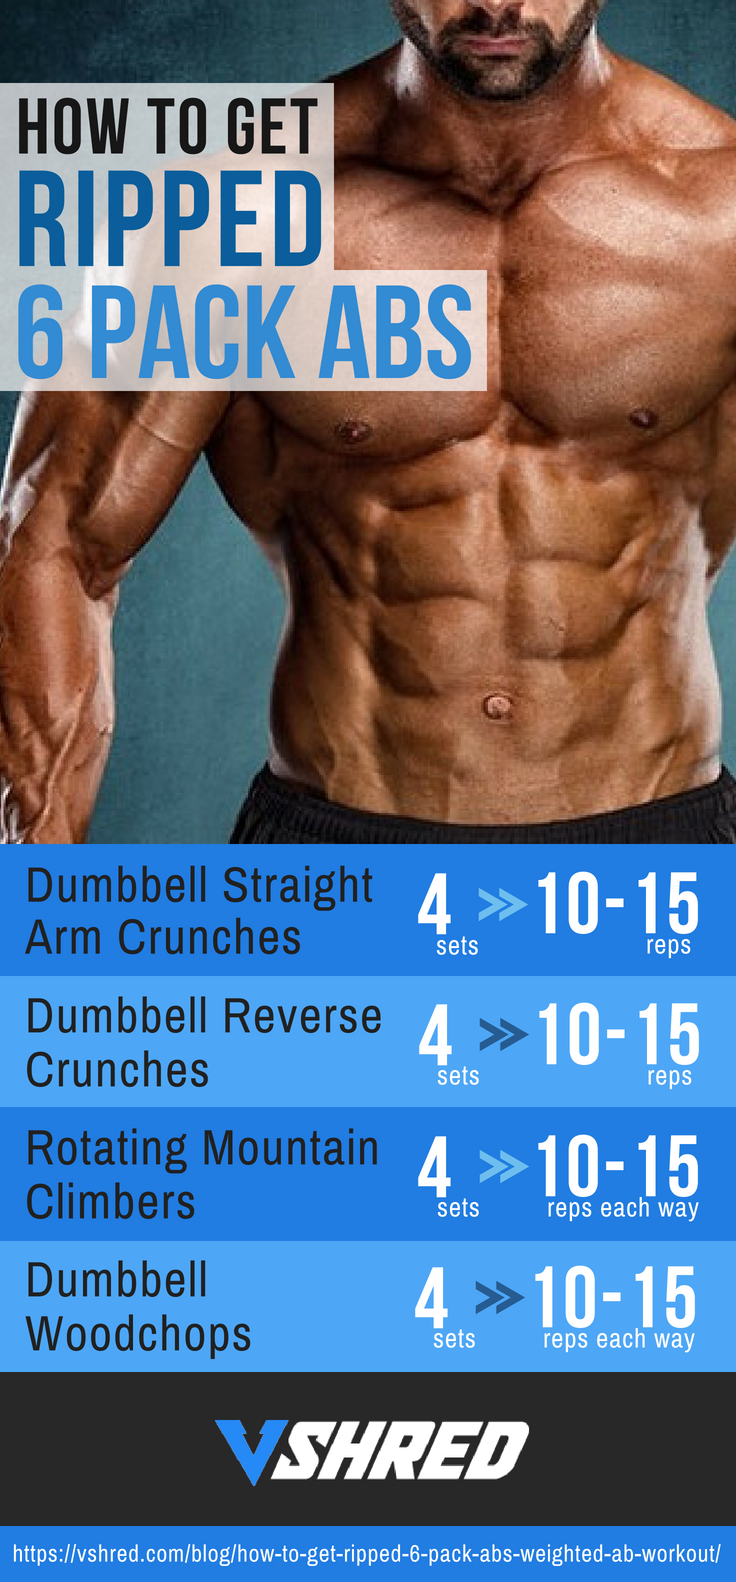 How To Get Ripped 6 Pack Abs Weighted Ab Workout Get 6 Pack Abs With A Workout That Requires Only A Dumbbell G Abs Weights Ripped Abs Get Ripped Workout